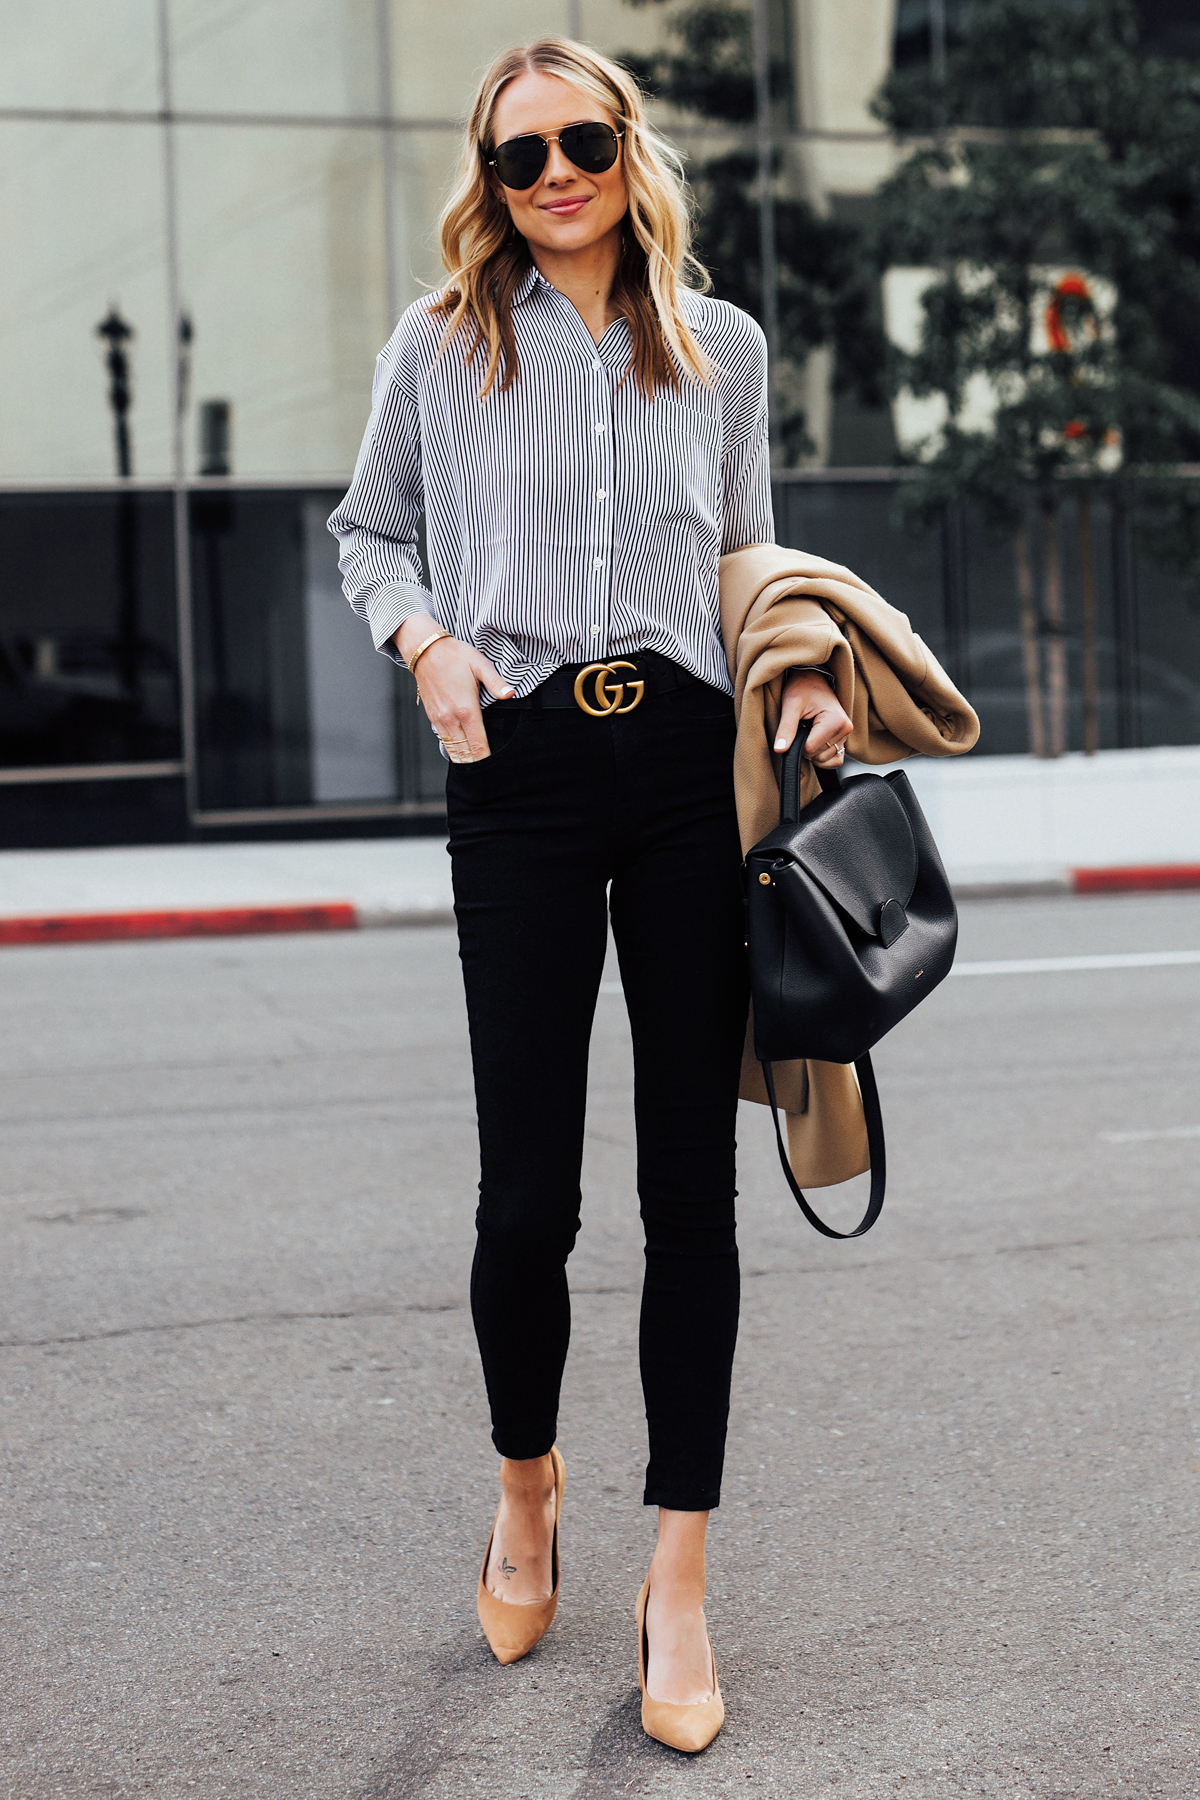 Blonde Woman Wearing Everlane Black White Stripe Button Down Shirt Black Skinny Jeans Black Gucci Belt Tan Pumps Polene Numero Un Black Handbag Camel Coat Fashion Jackson San Diego Fashion Blogger Street Style